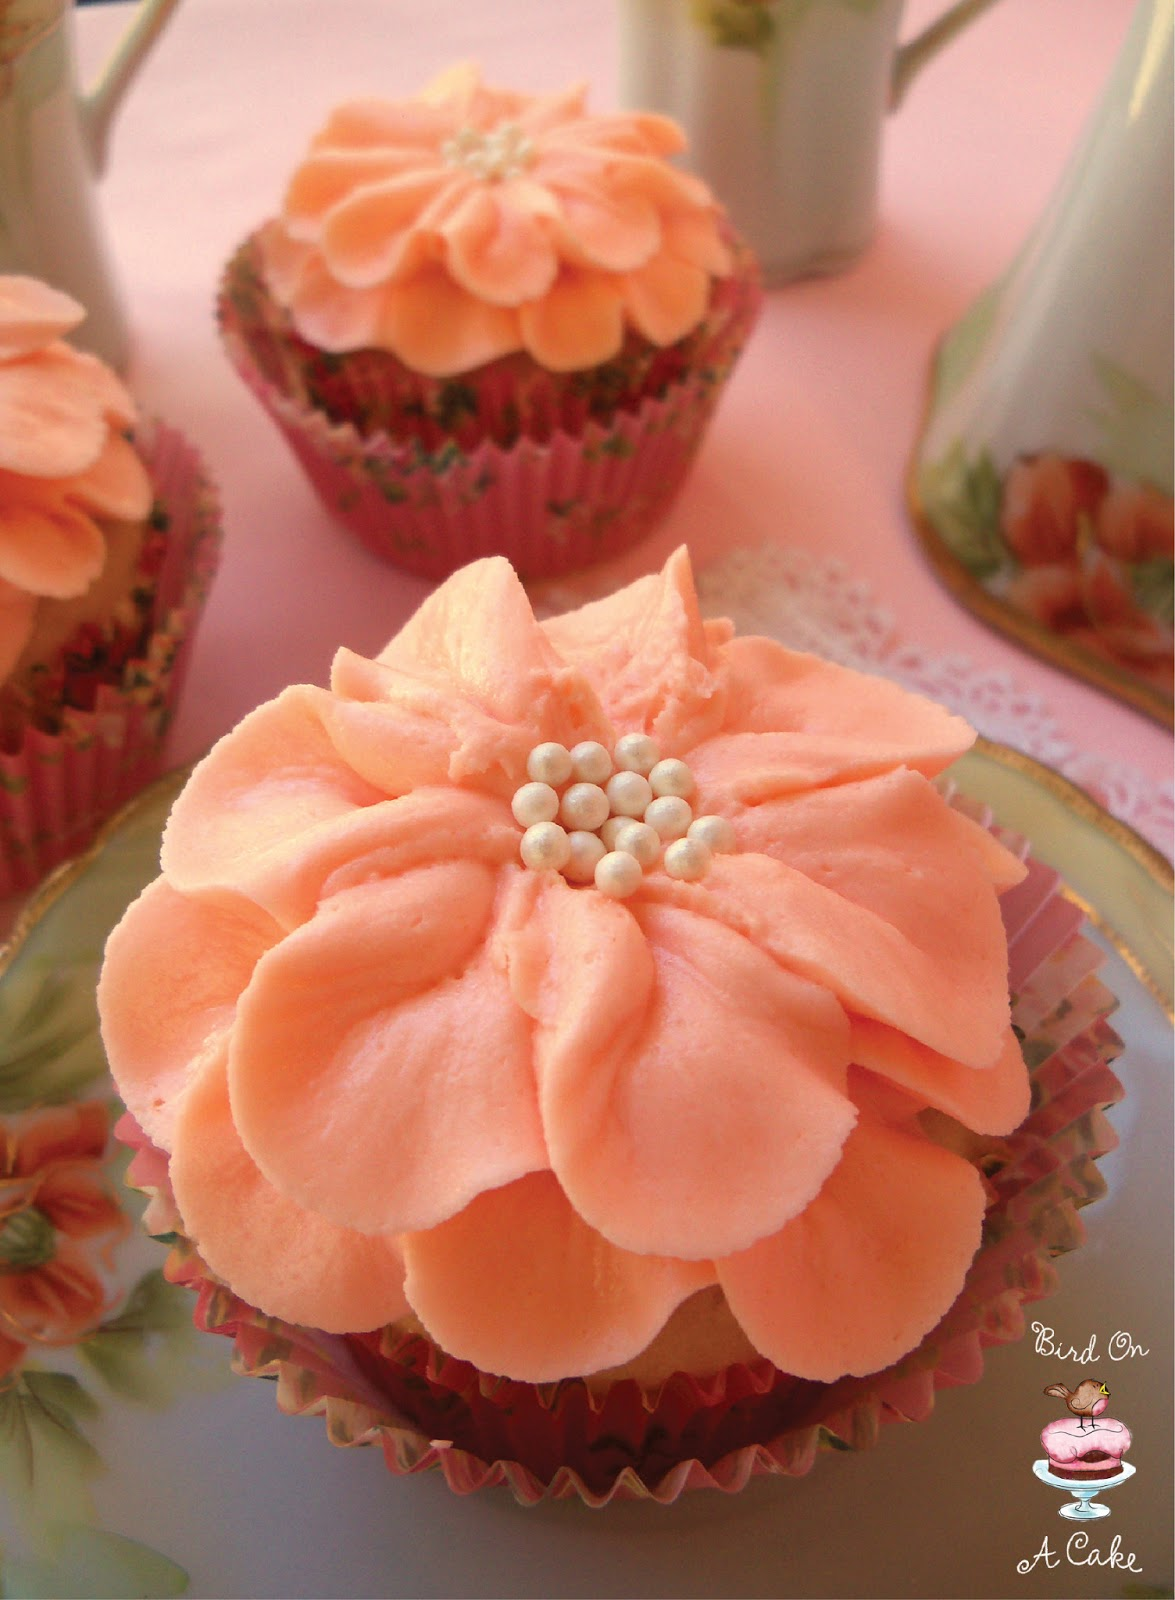 Bird On A Cake: Pretty Flower Cupcakes for Mother's Day